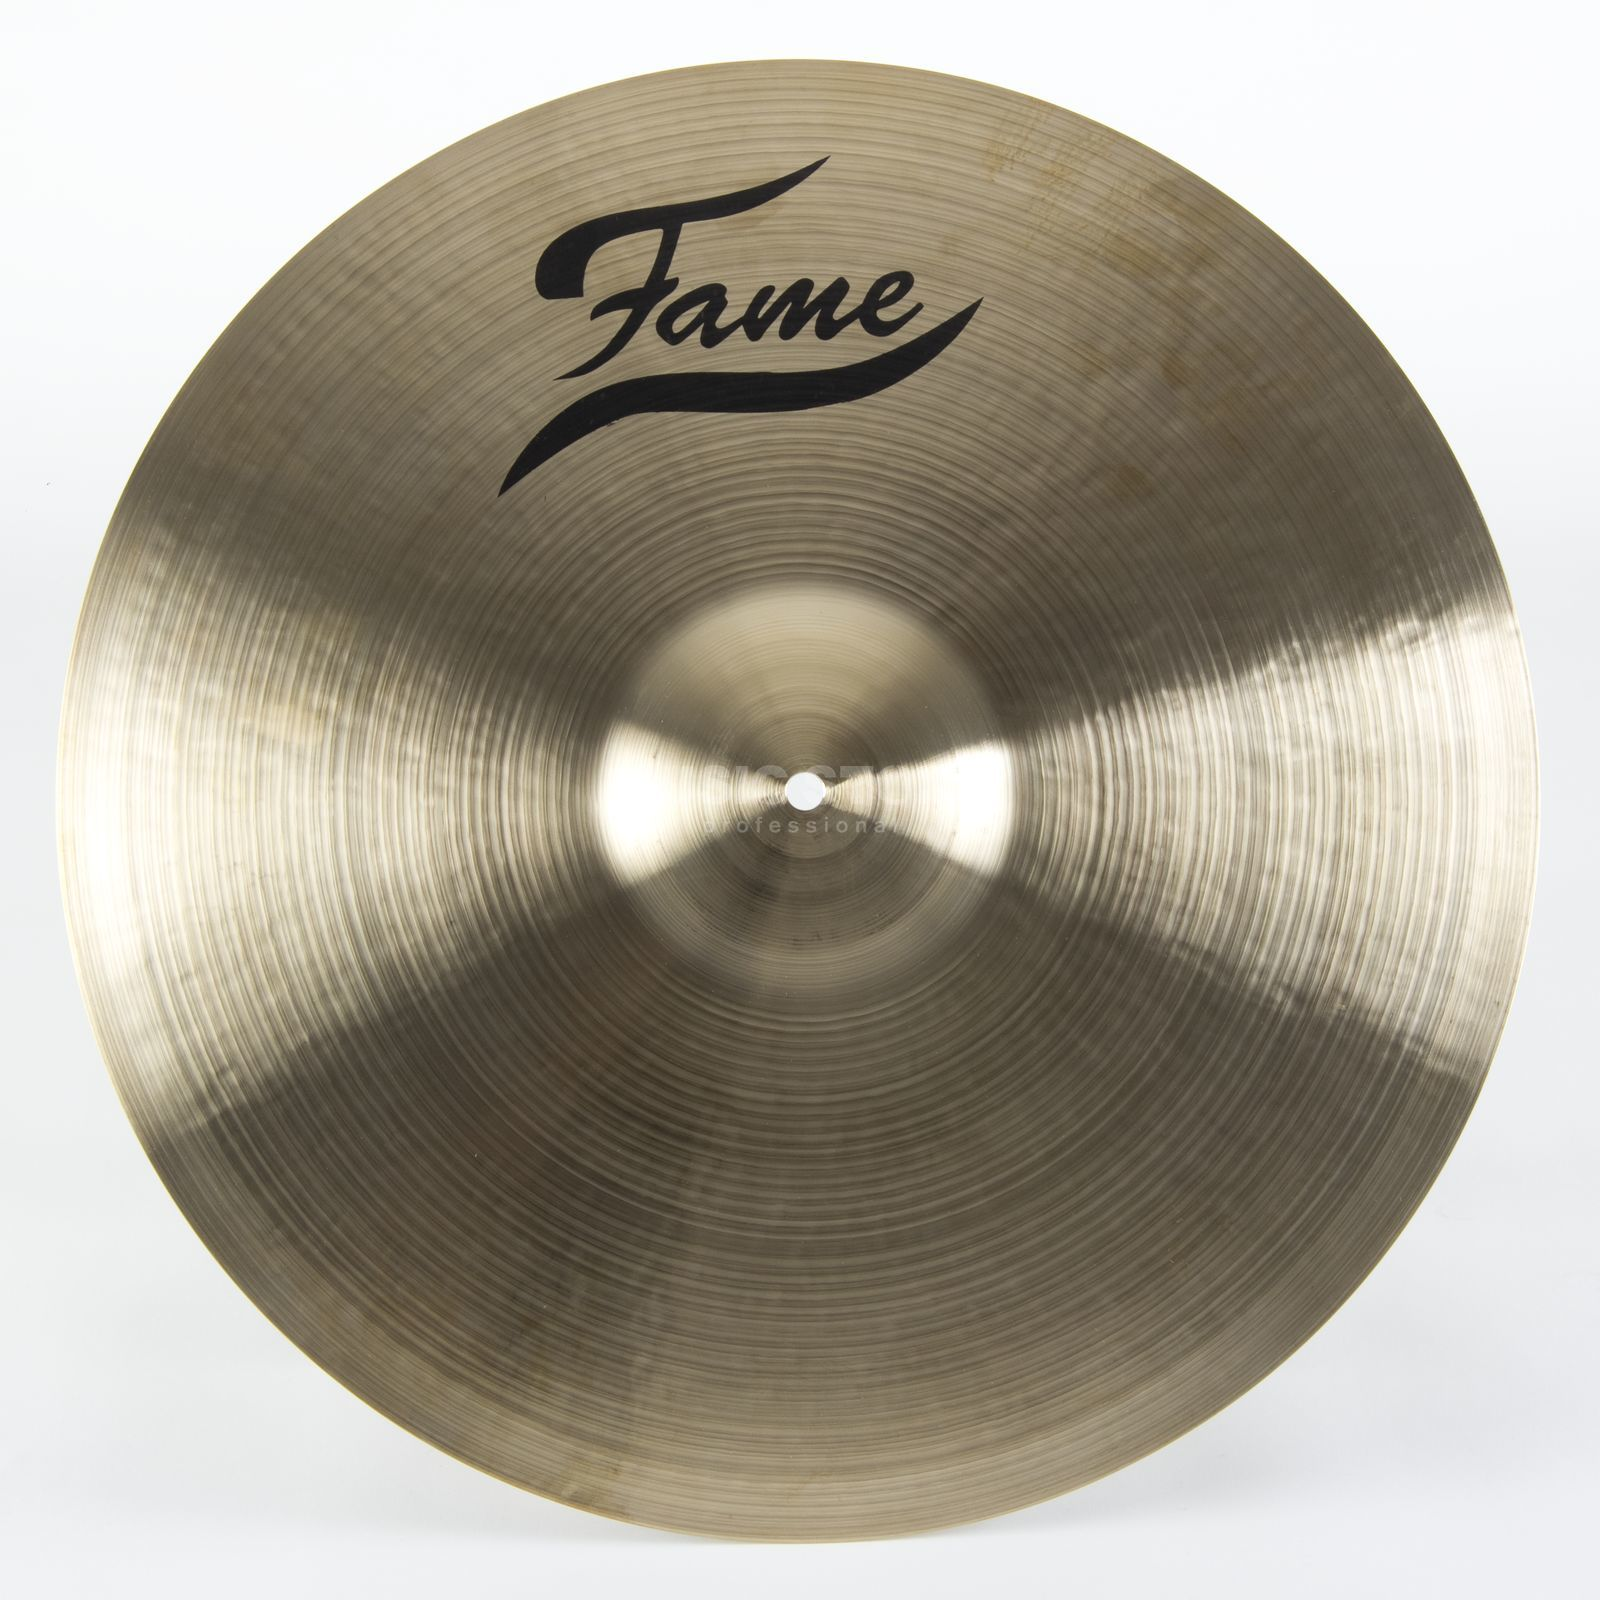 "Fame Masters B20 Medium Ride 22"", Natural Finish Produktbillede"